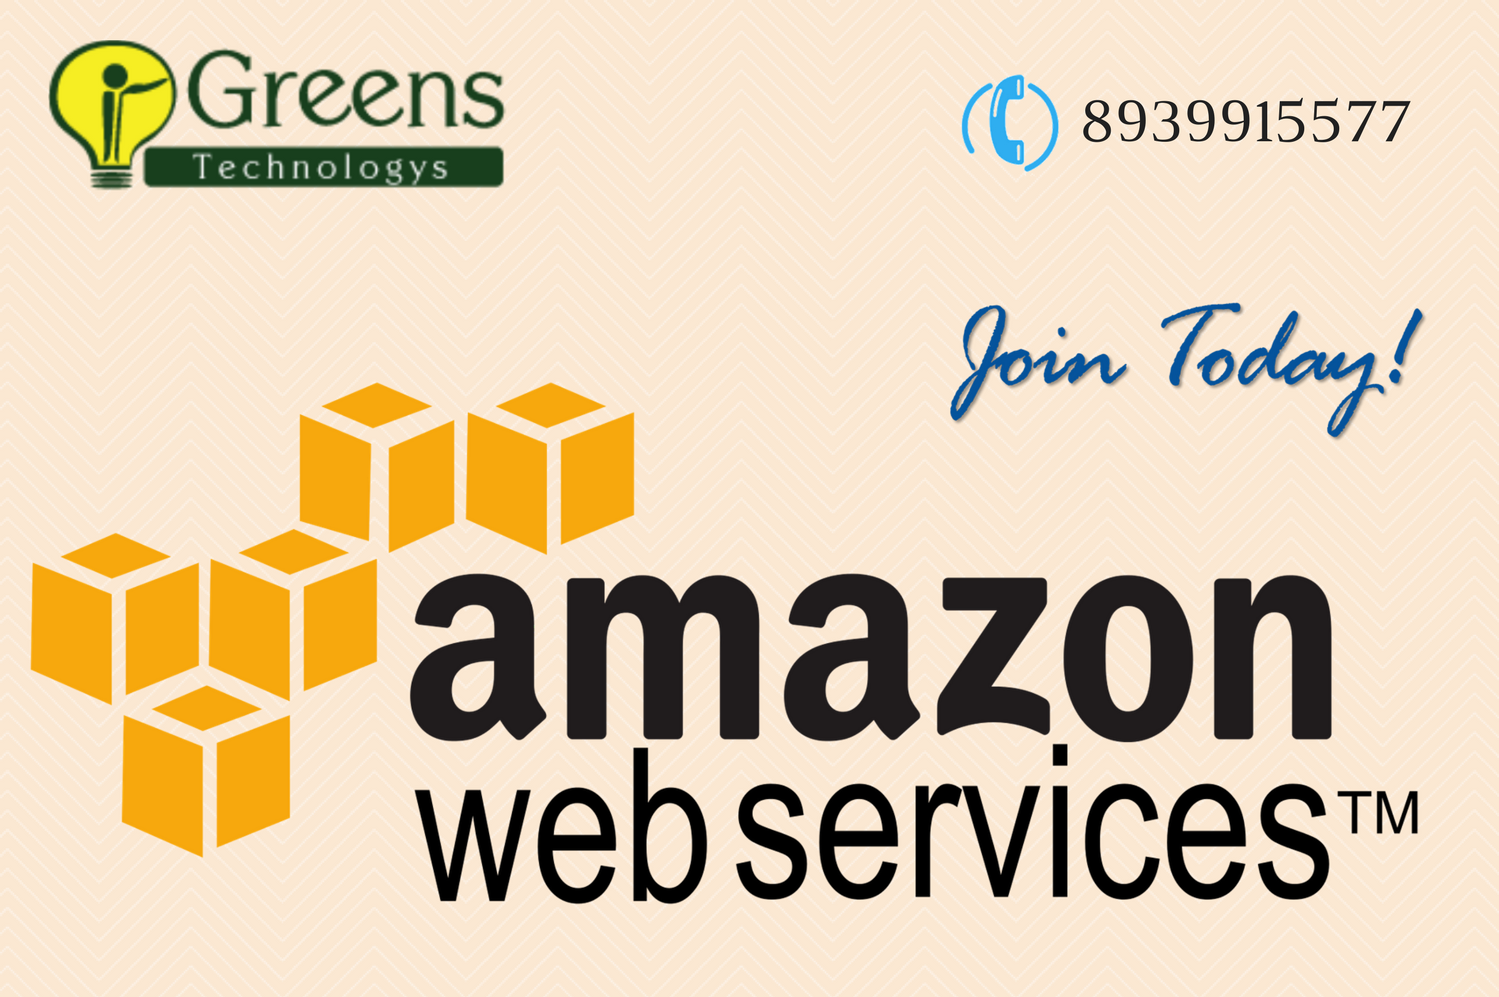 Greens Technology Provides Aws Training In Chennai To Professionals